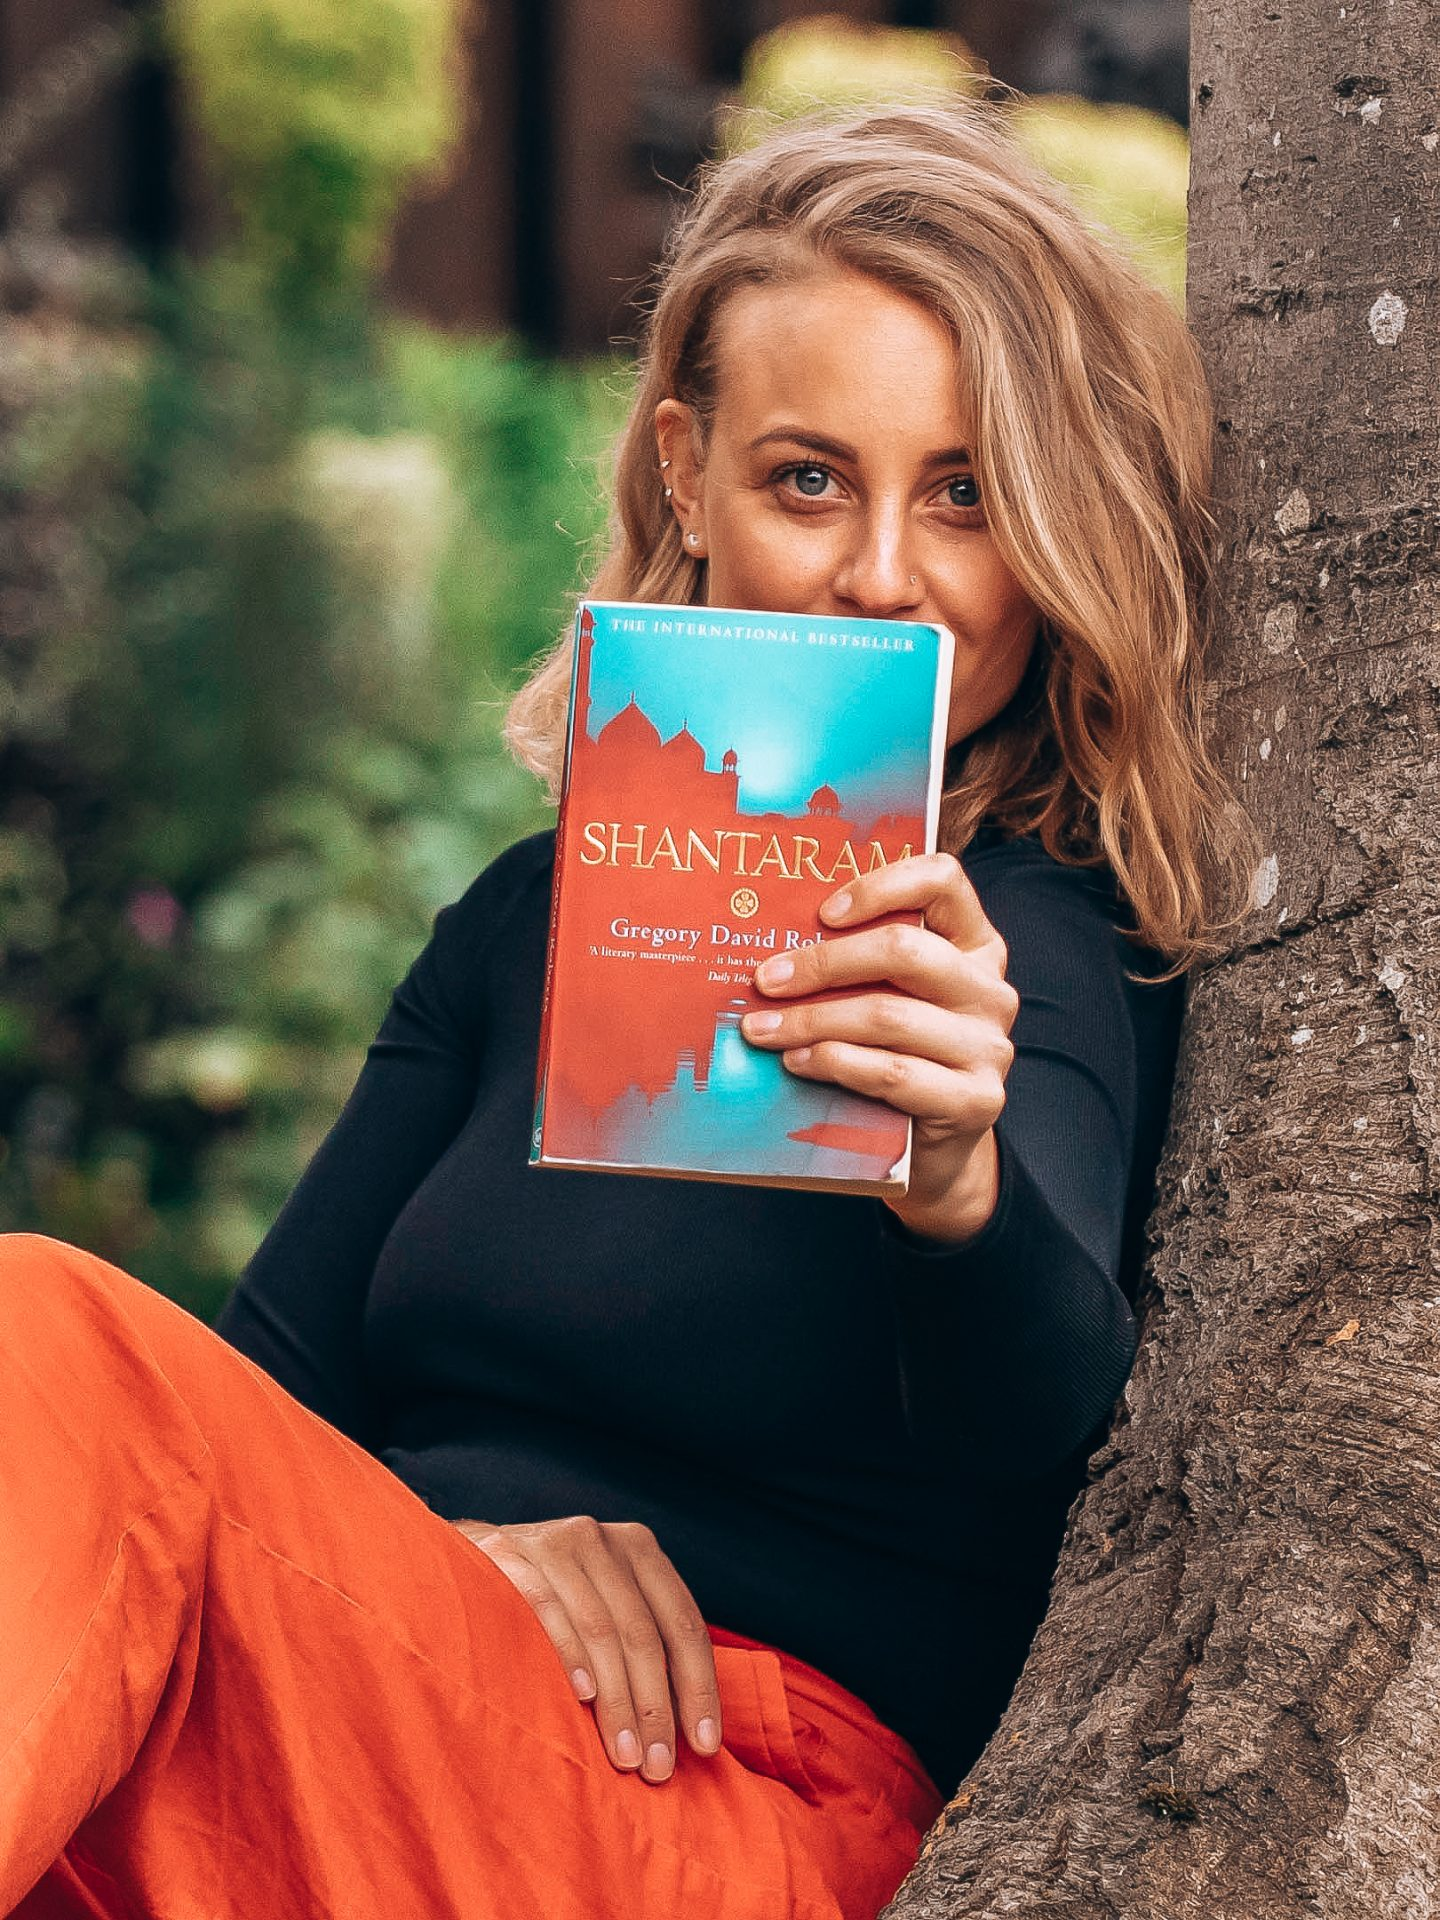 Shantaram Review - Sarah under the tree holding the Shantaram book in front of her